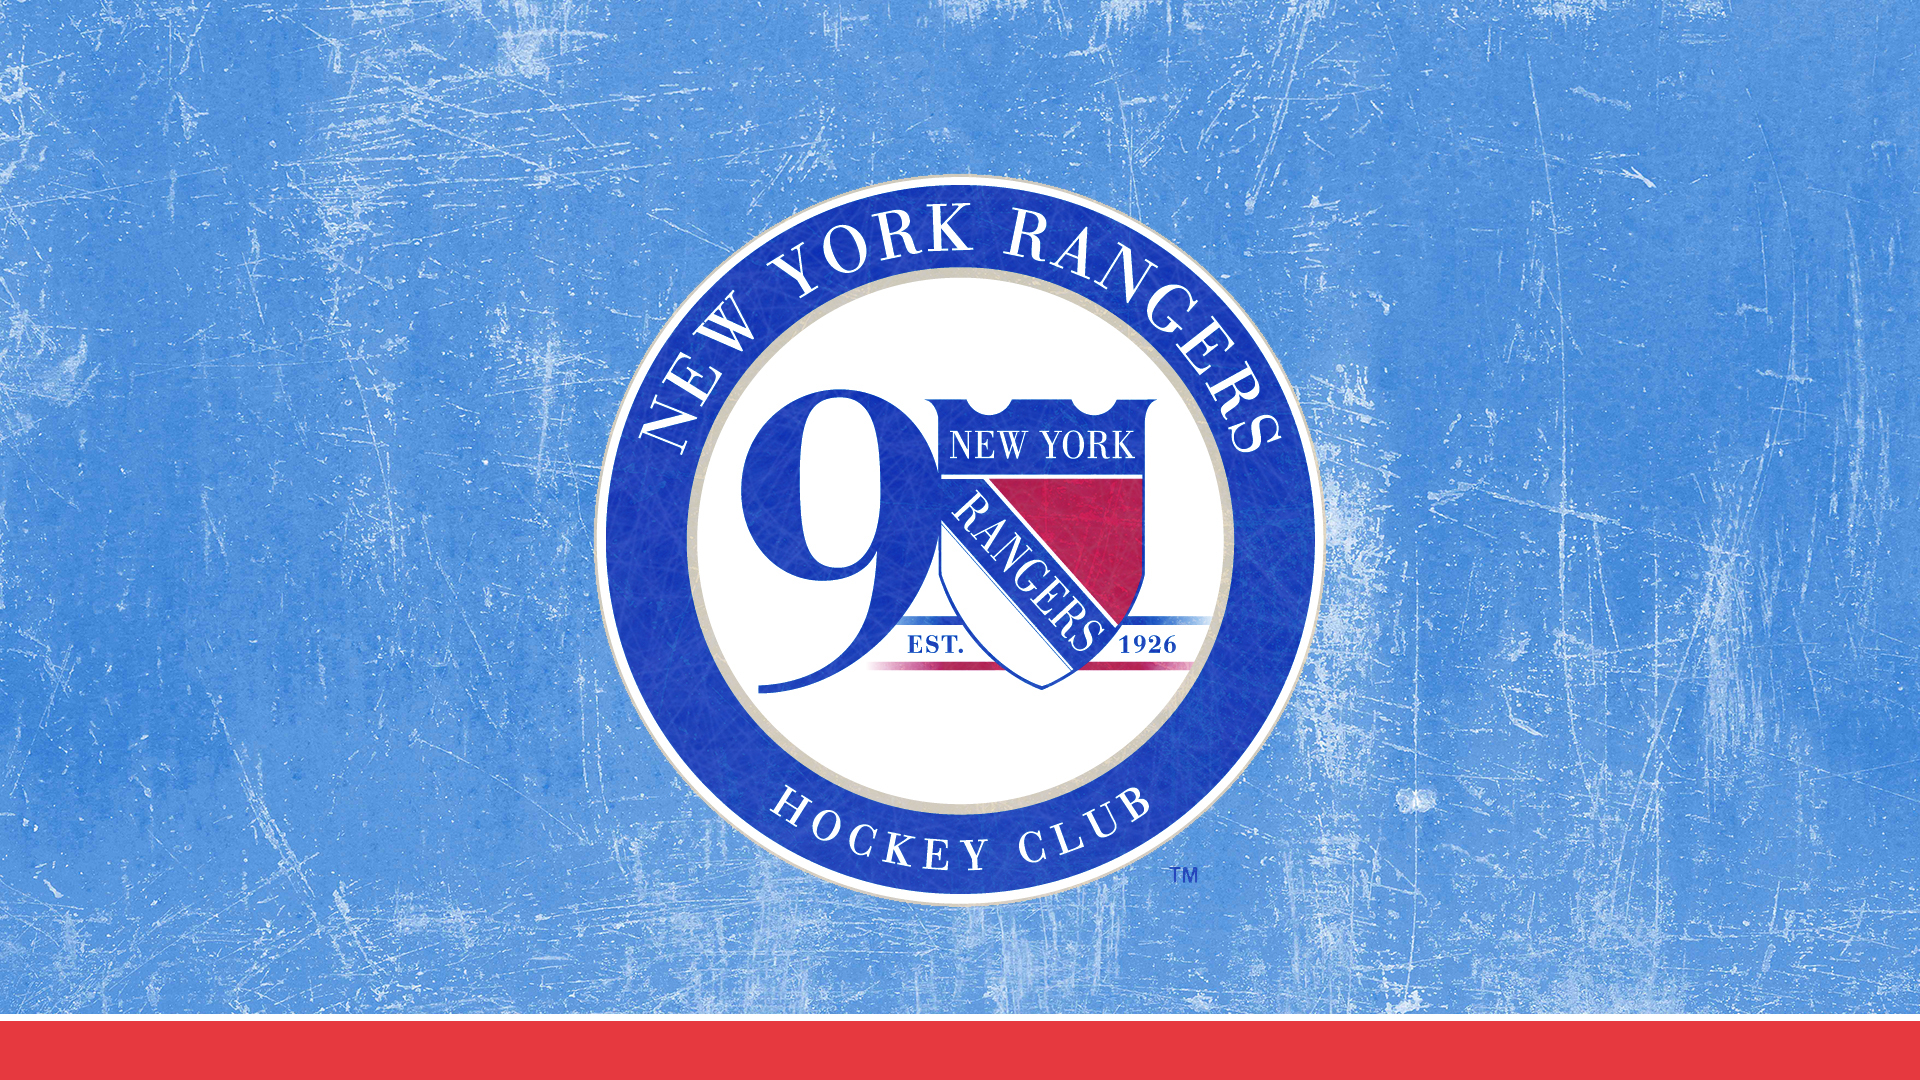 New York Rangers 90th Anniverary Wallpapers On Behance